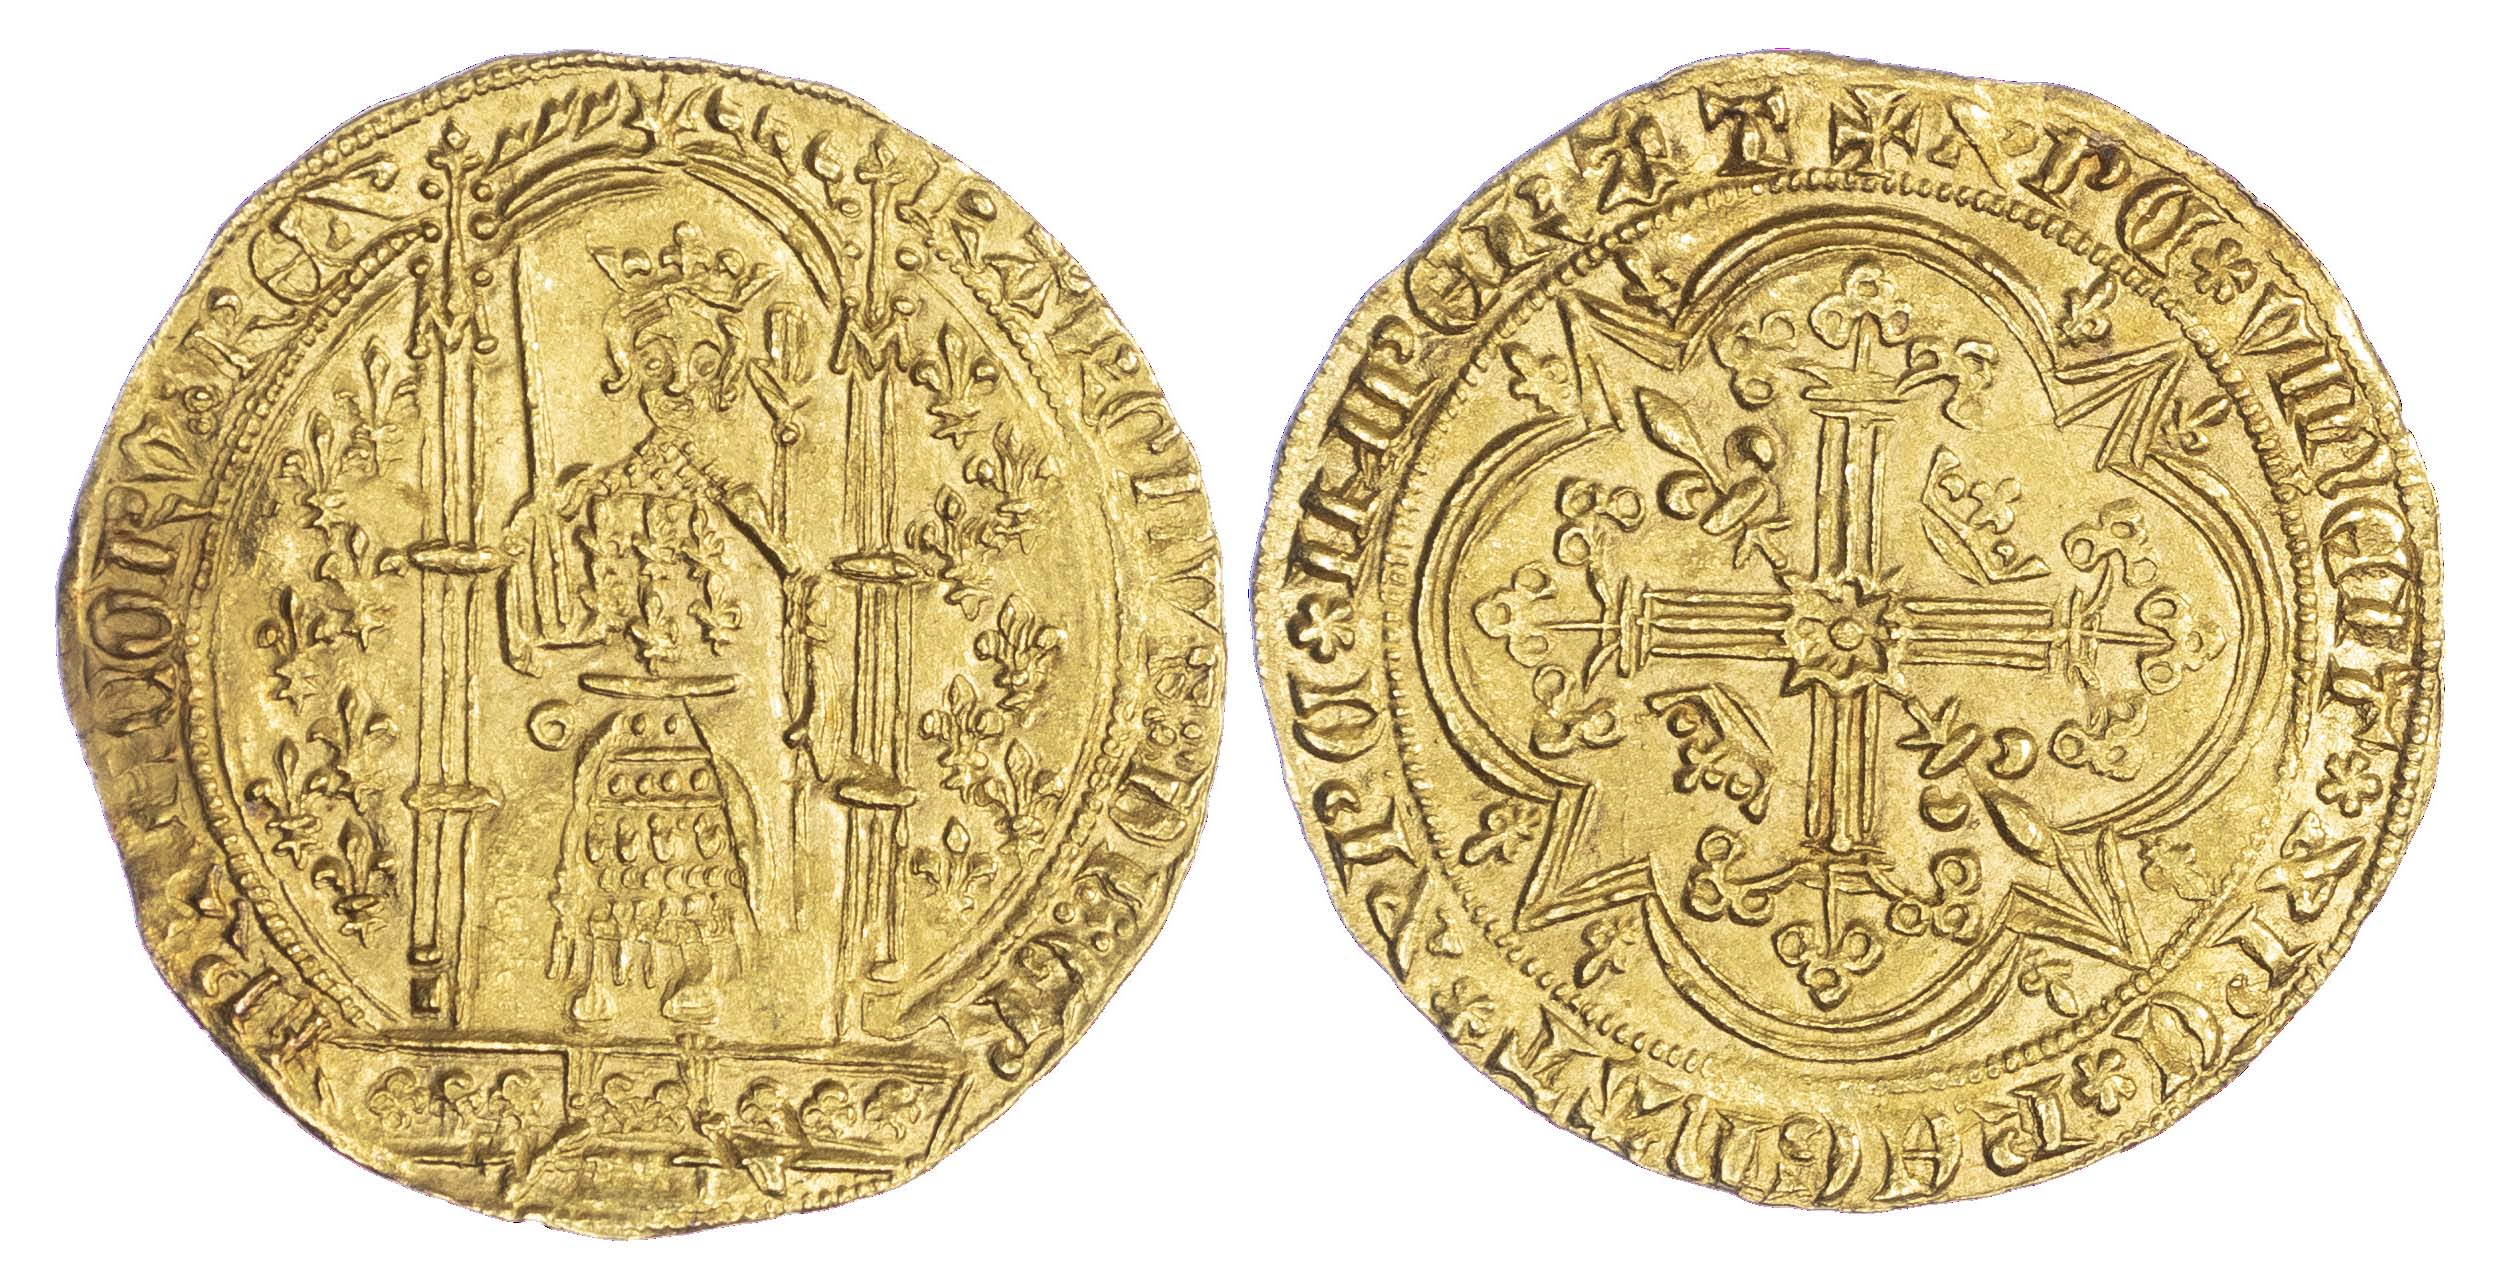 France, Charles V (the Wise) (1364-80 AD), gold Franc à pied, Paris